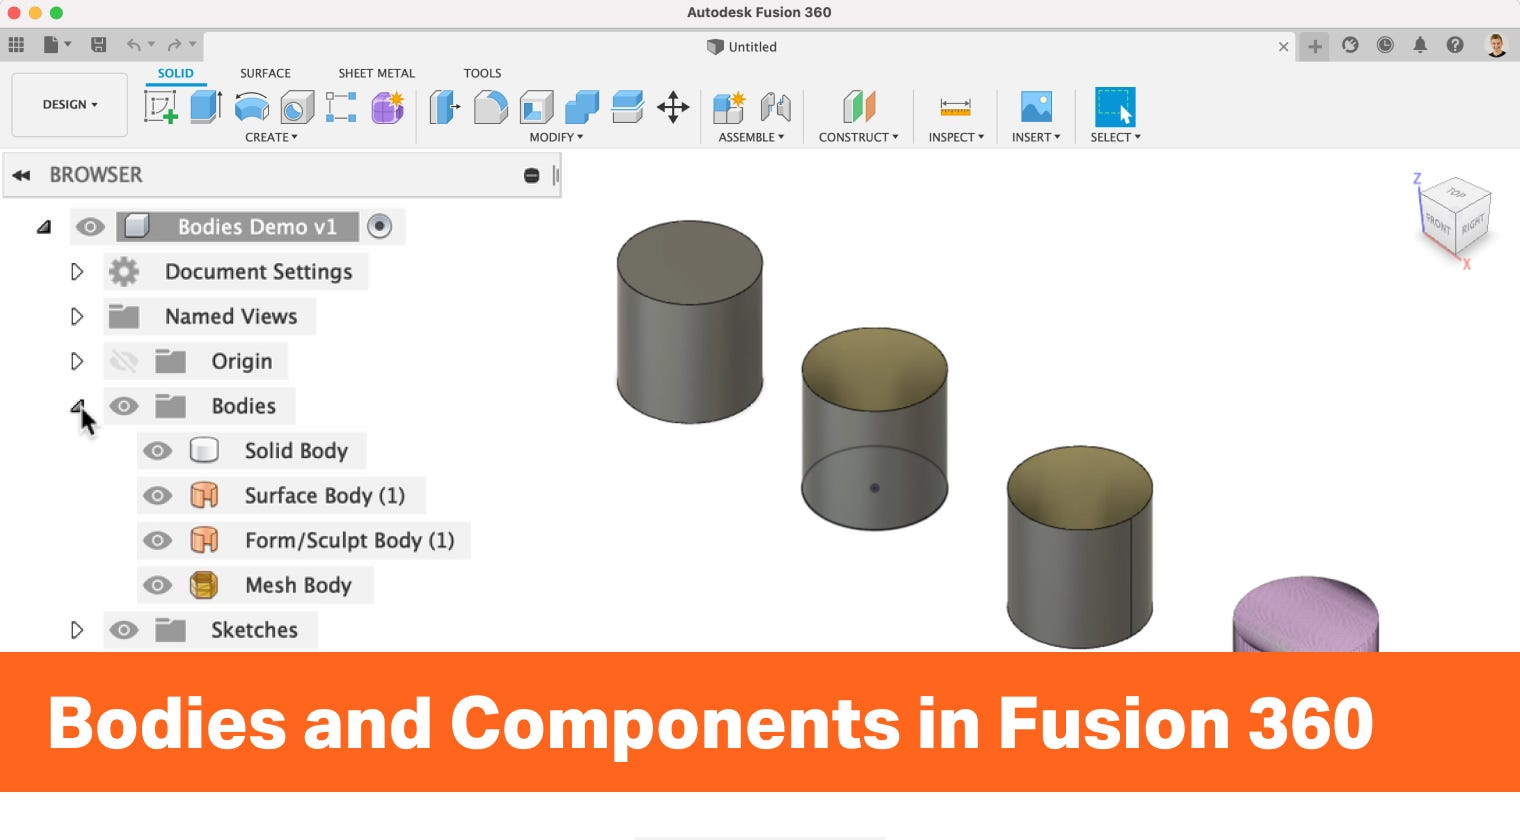 Understanding Bodies and Components in Autodesk Fusion 360